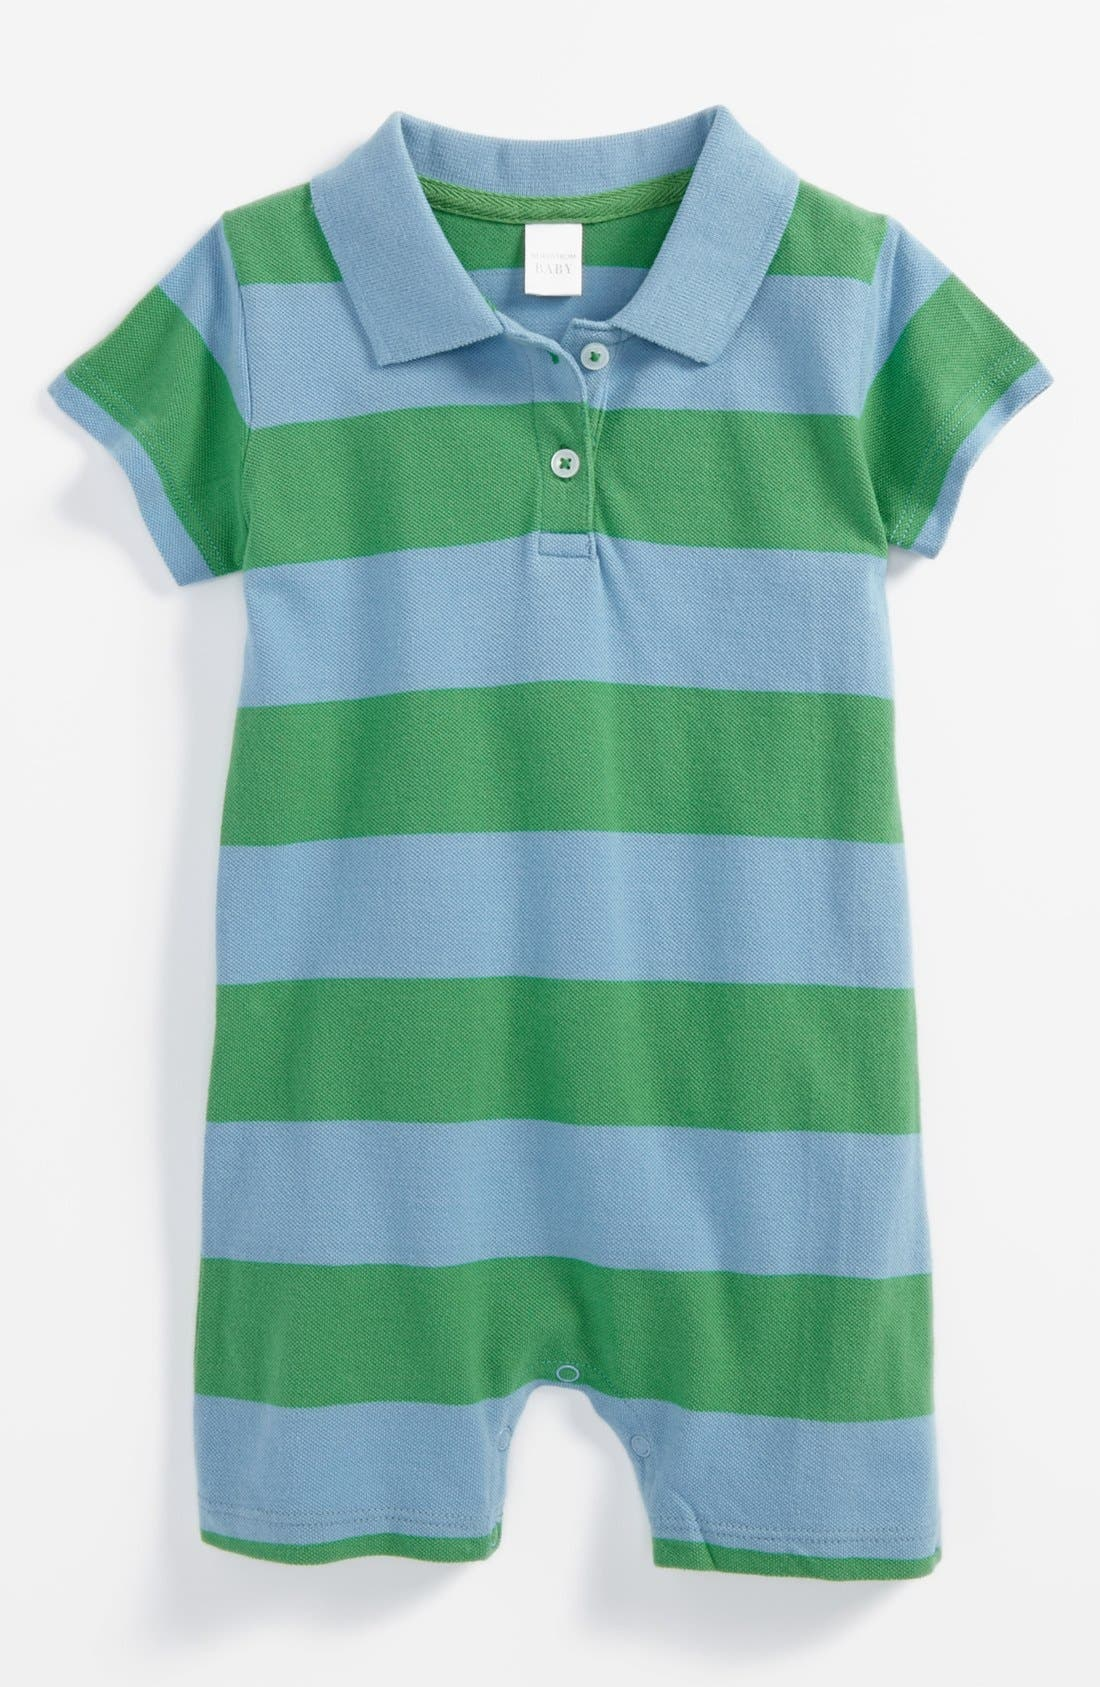 Alternate Image 1 Selected - Nordstrom Baby Stripe Romper (Baby Boys)